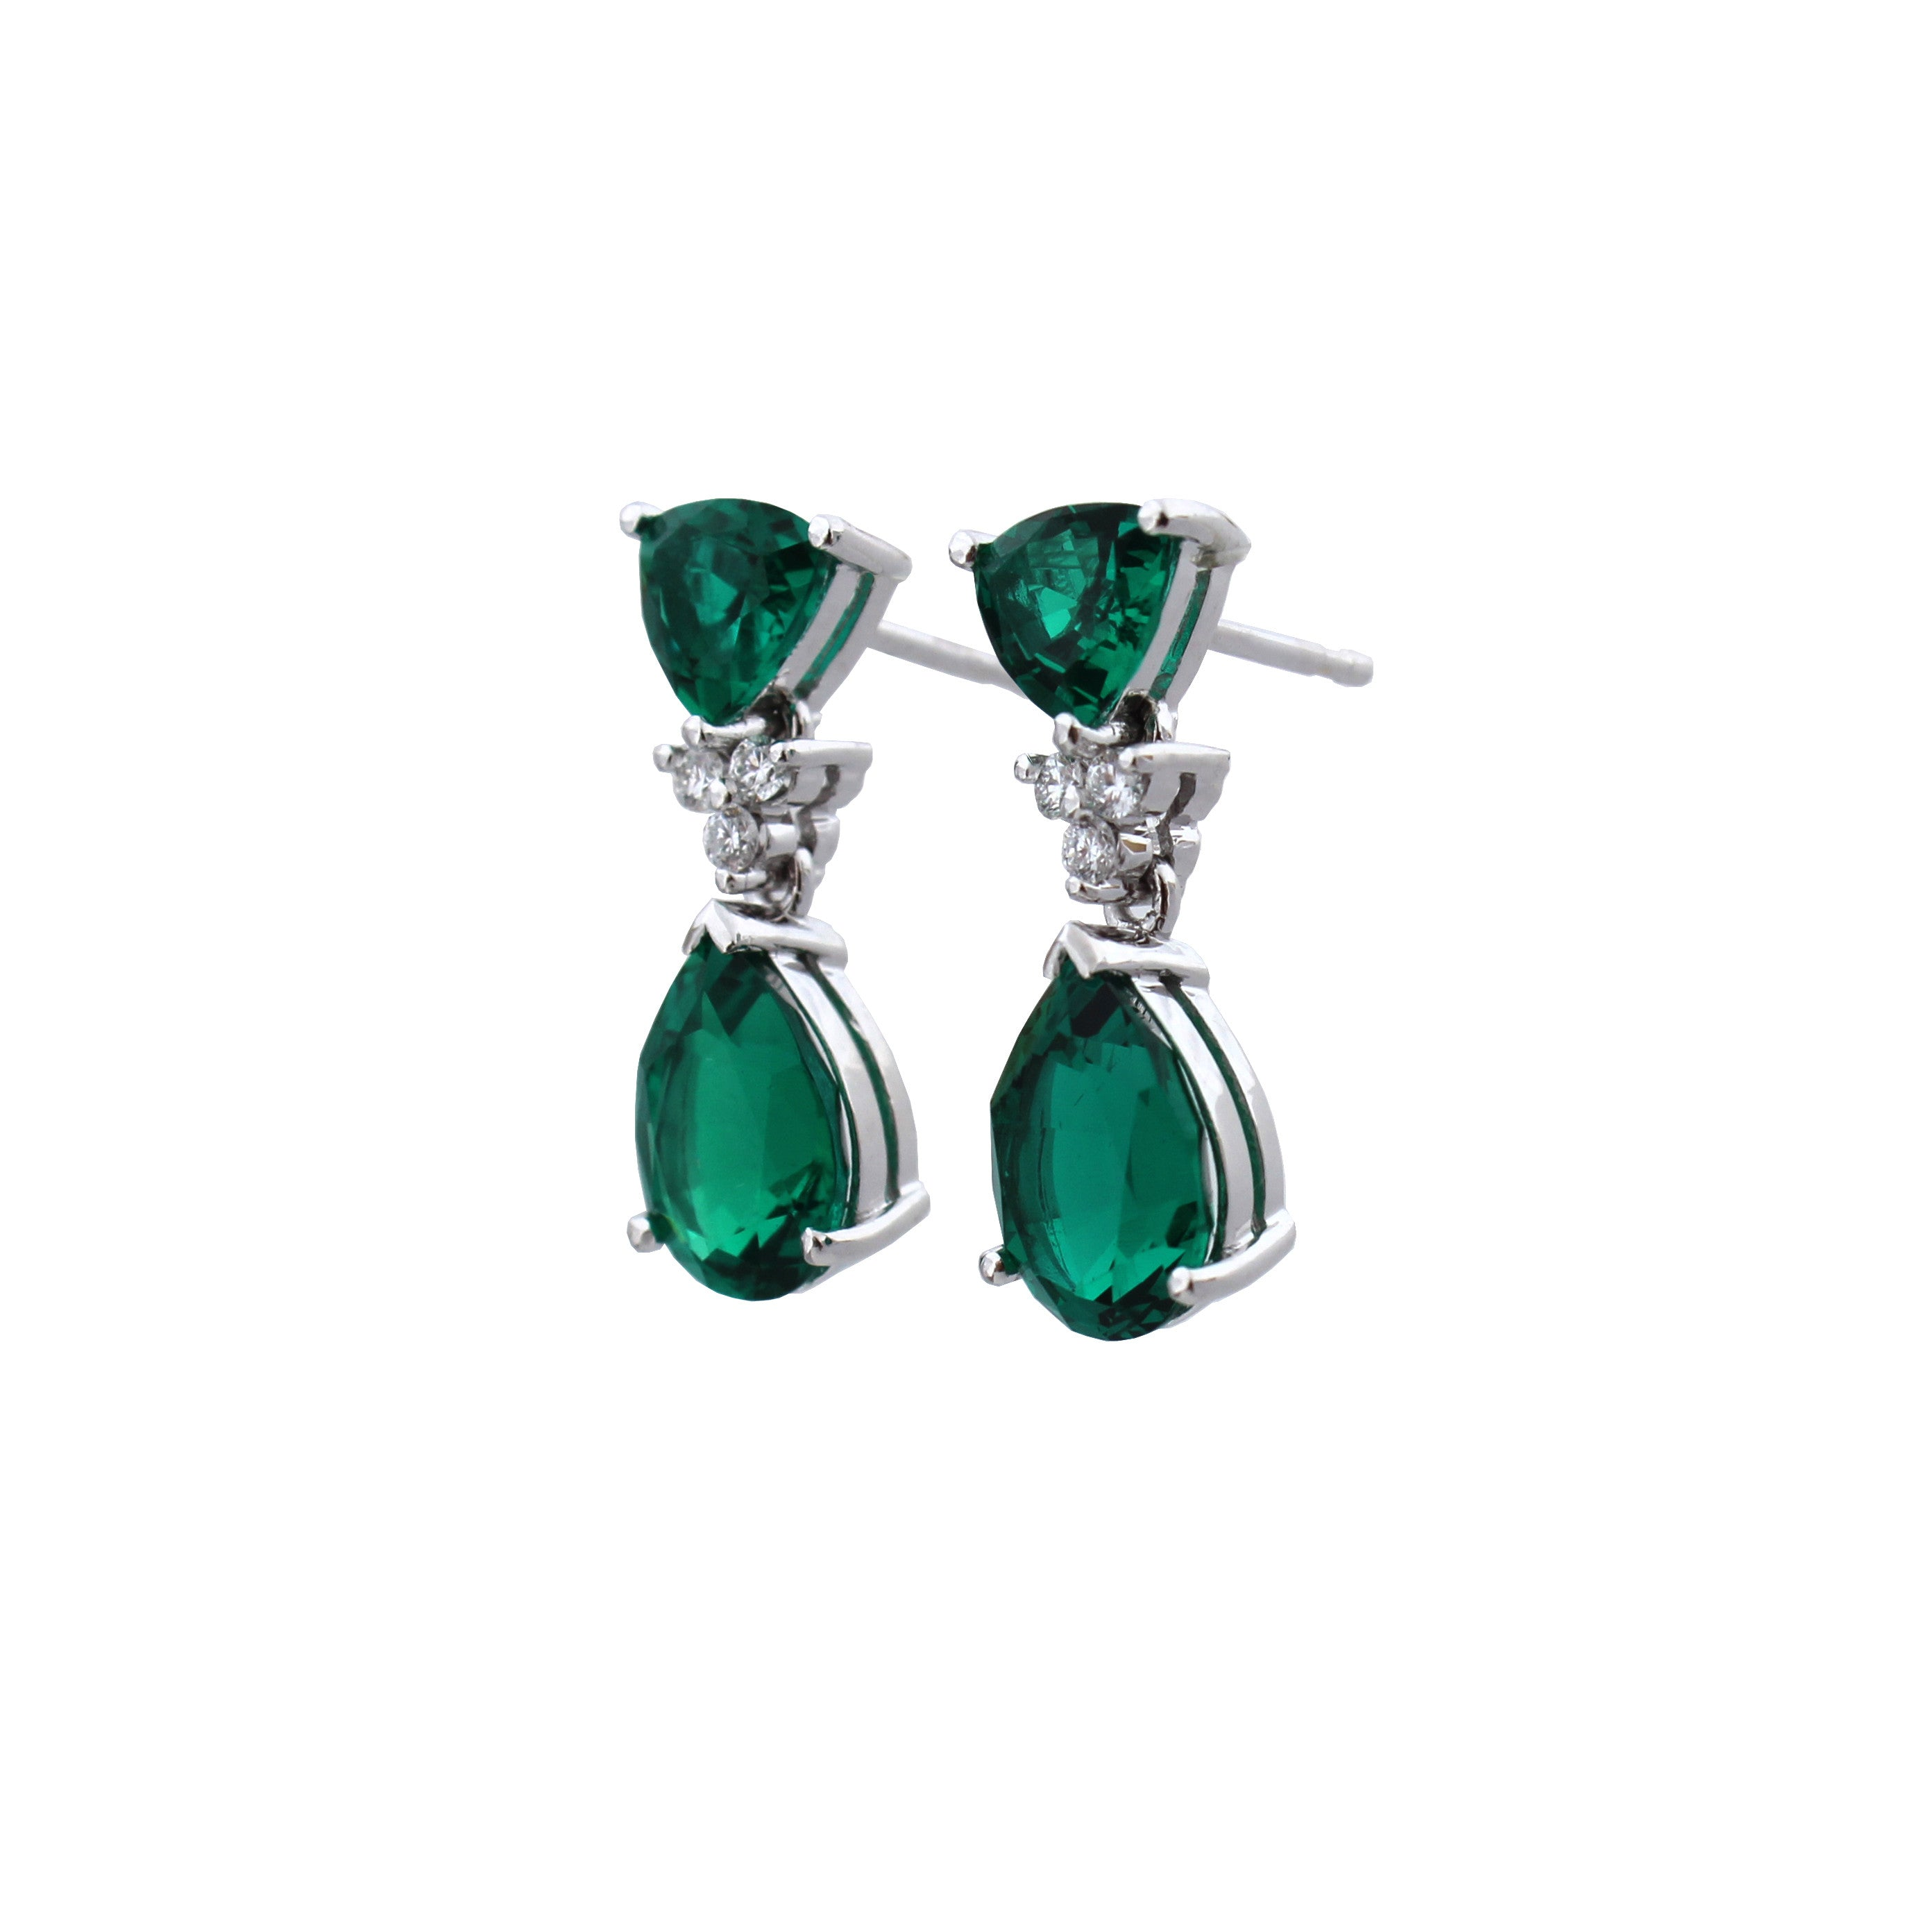 Bespoke Trillion and Pear Shape Emerald Earrings